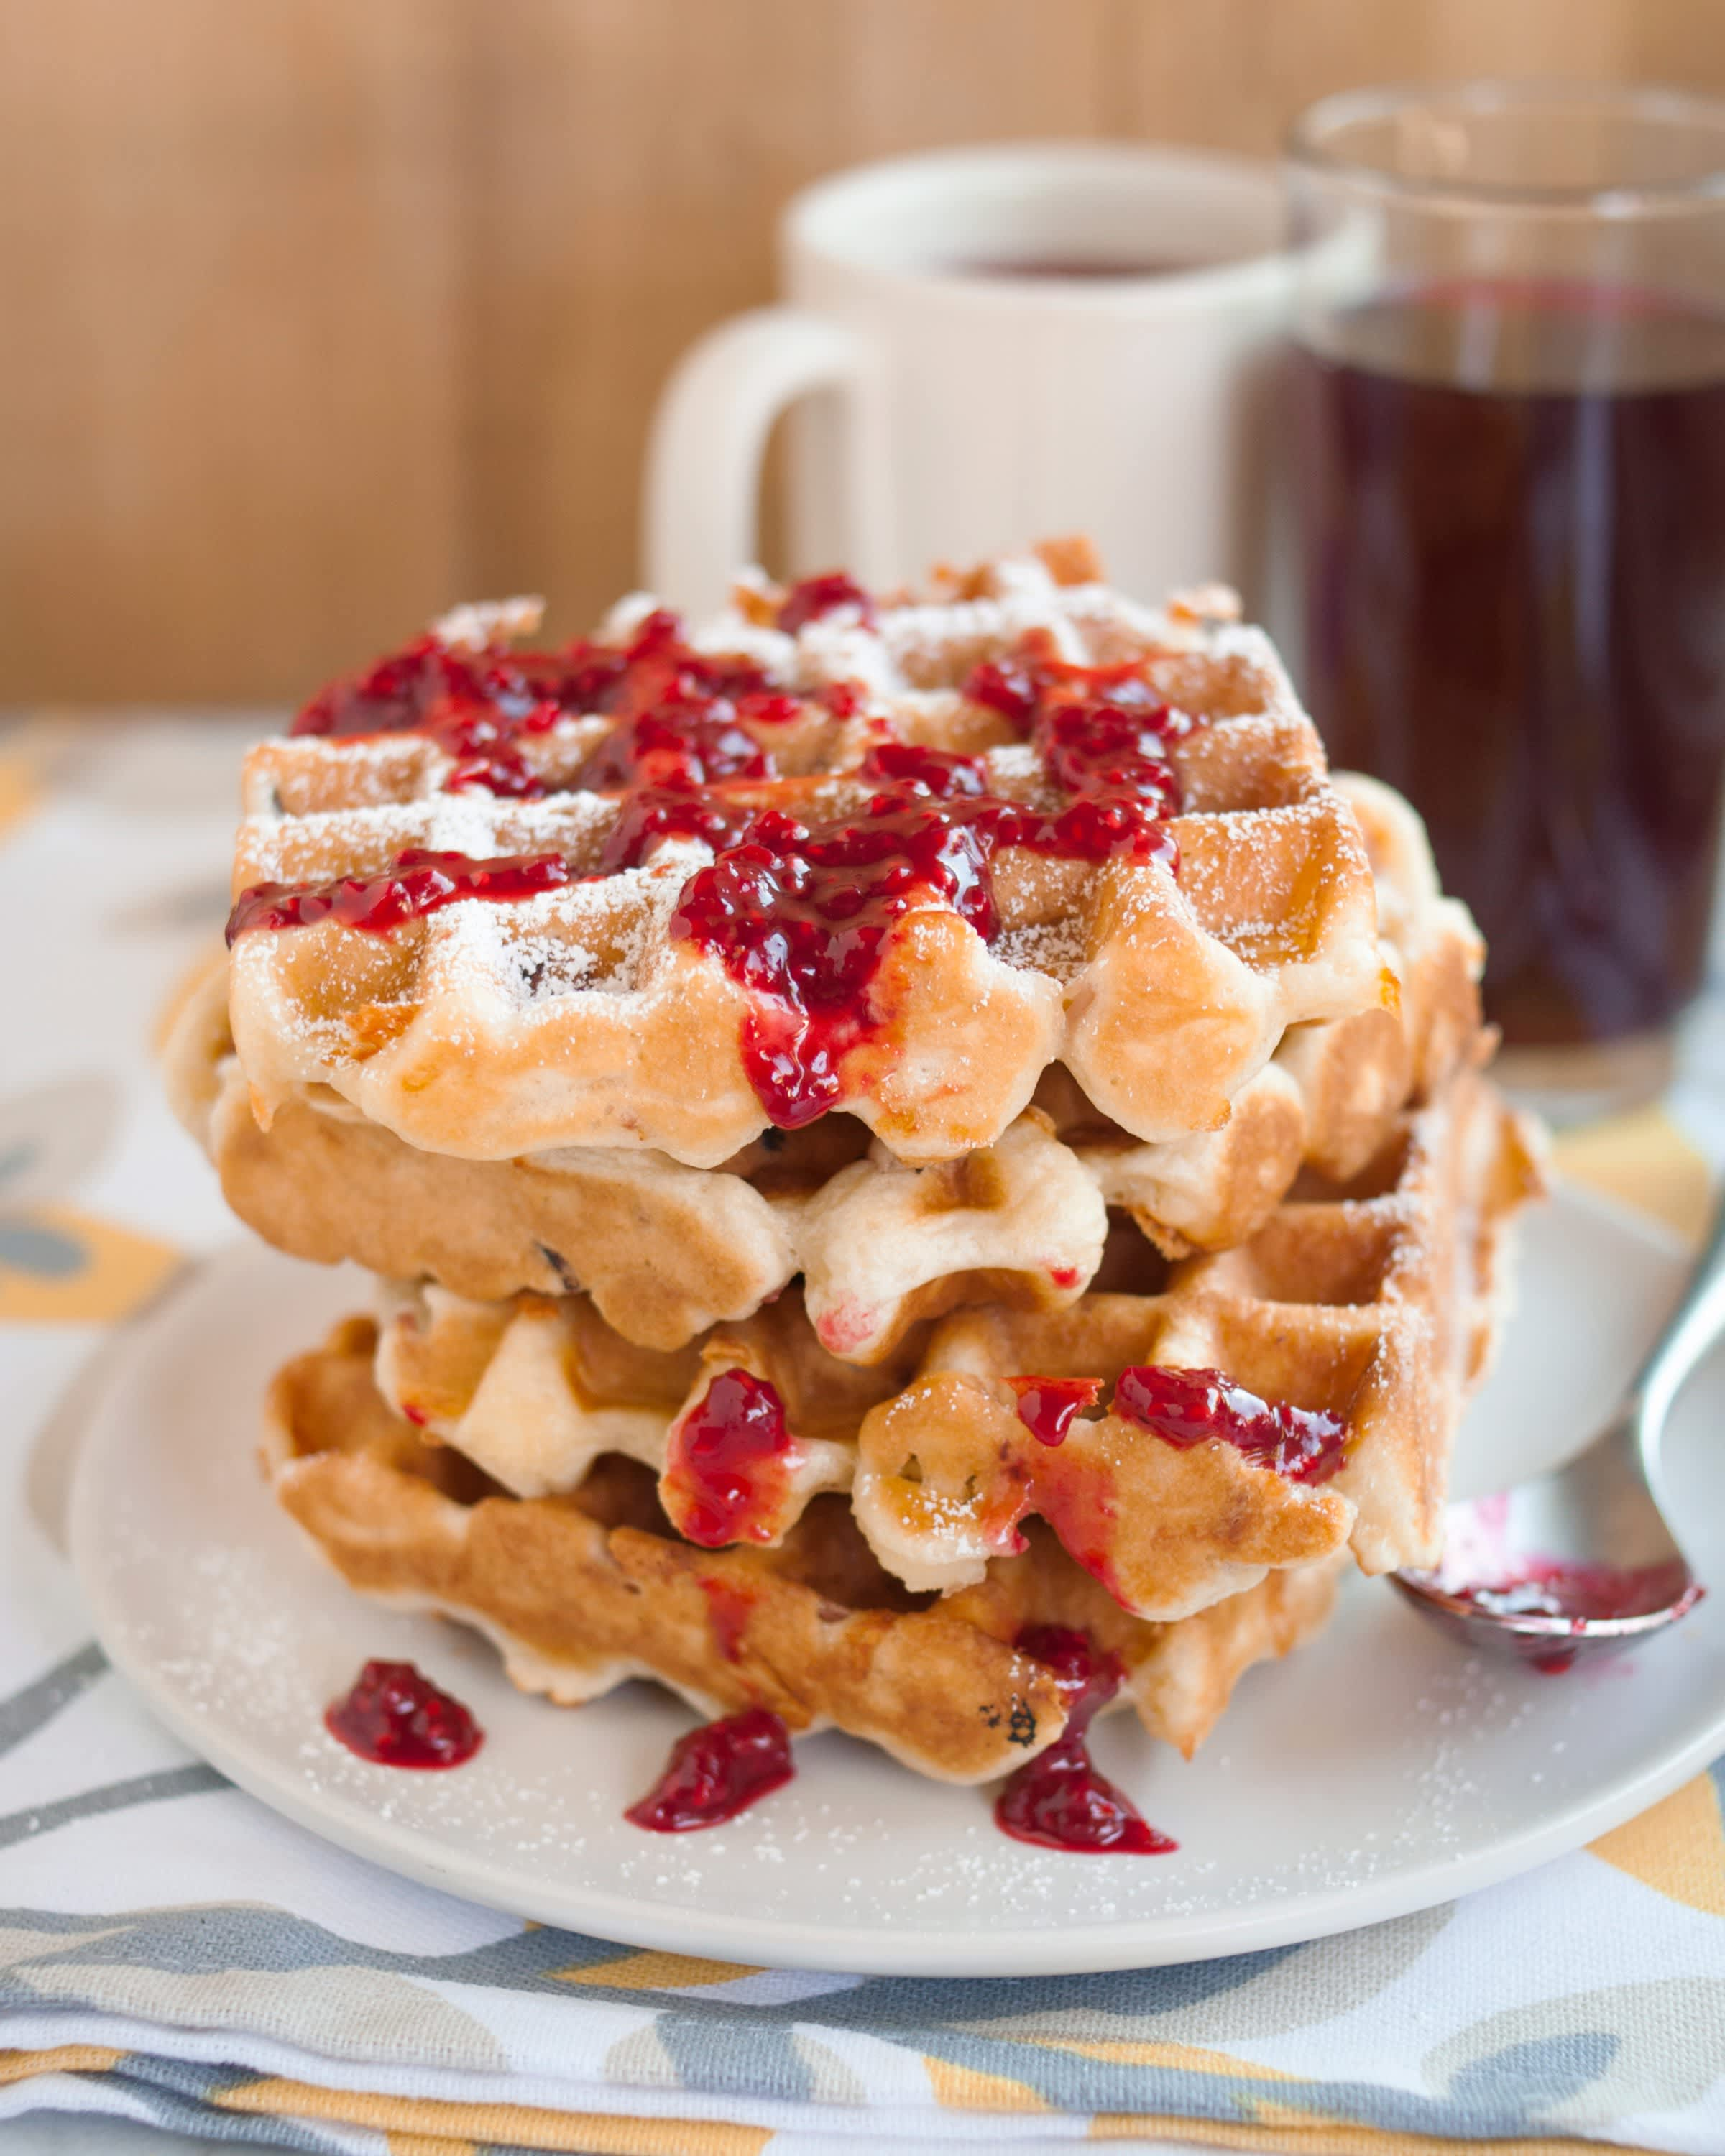 8 Surprising Things You Can Make In A Waffle Iron